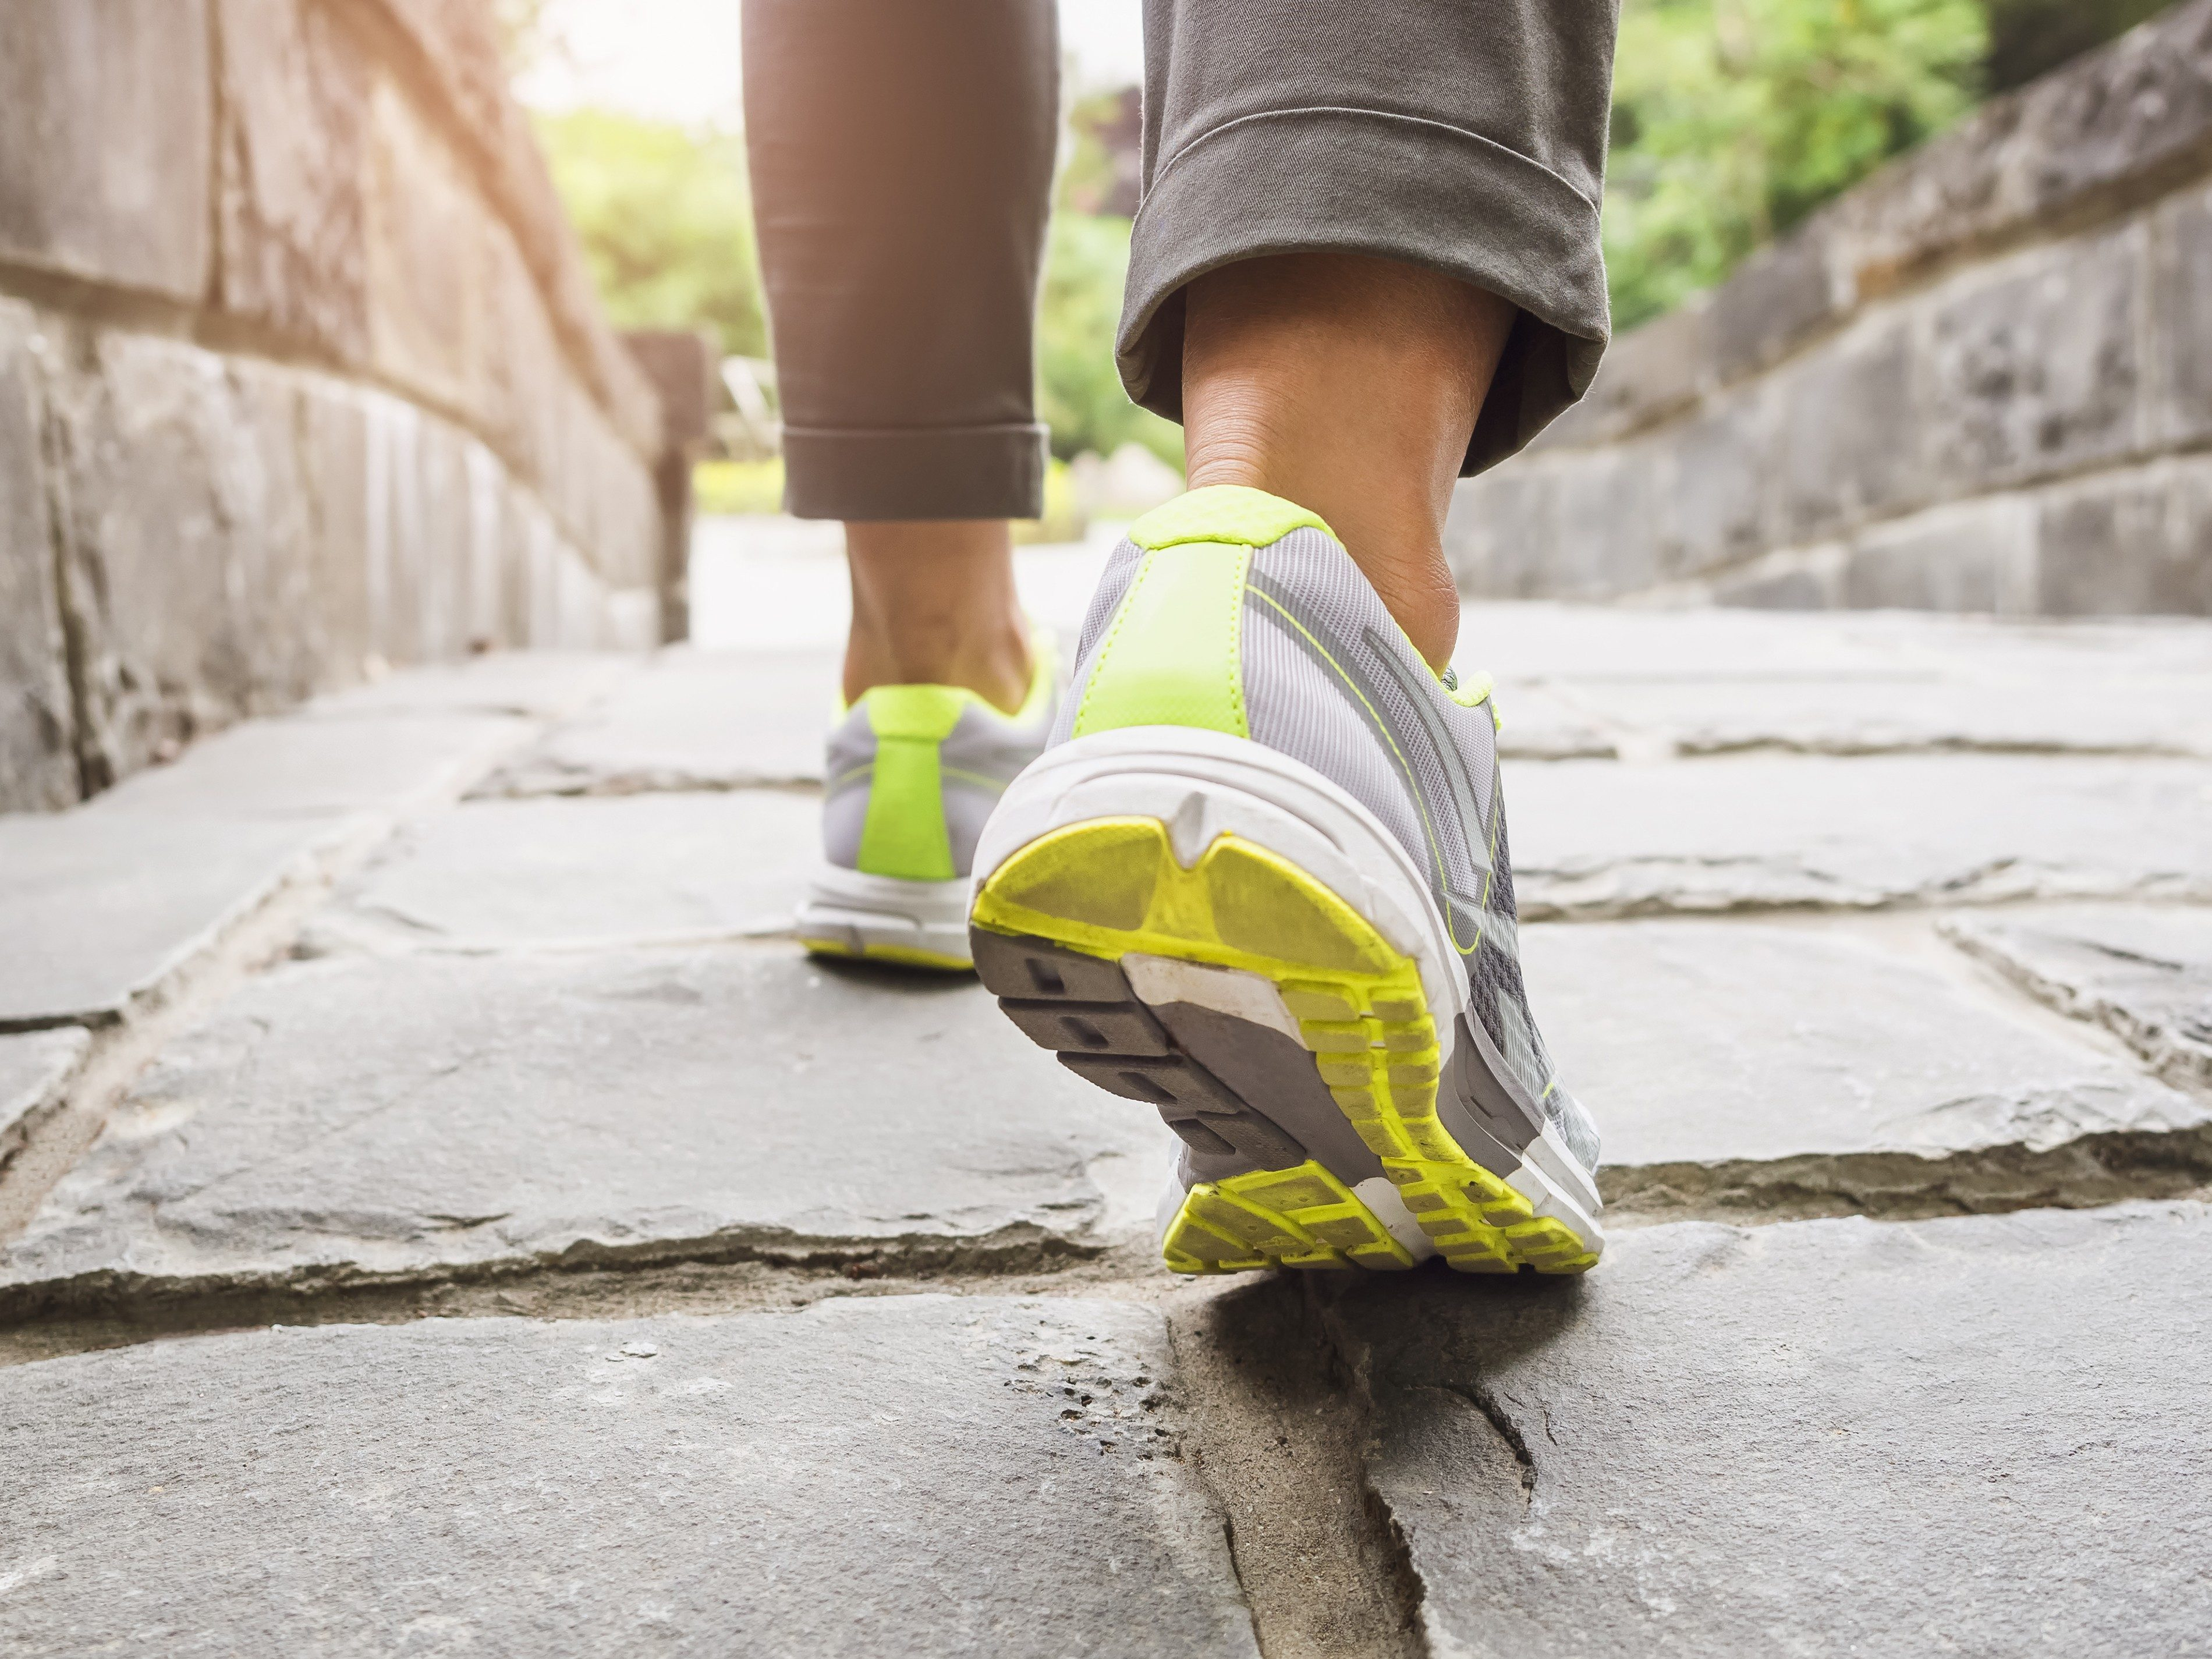 4. Prevent jet lag by going for a walk